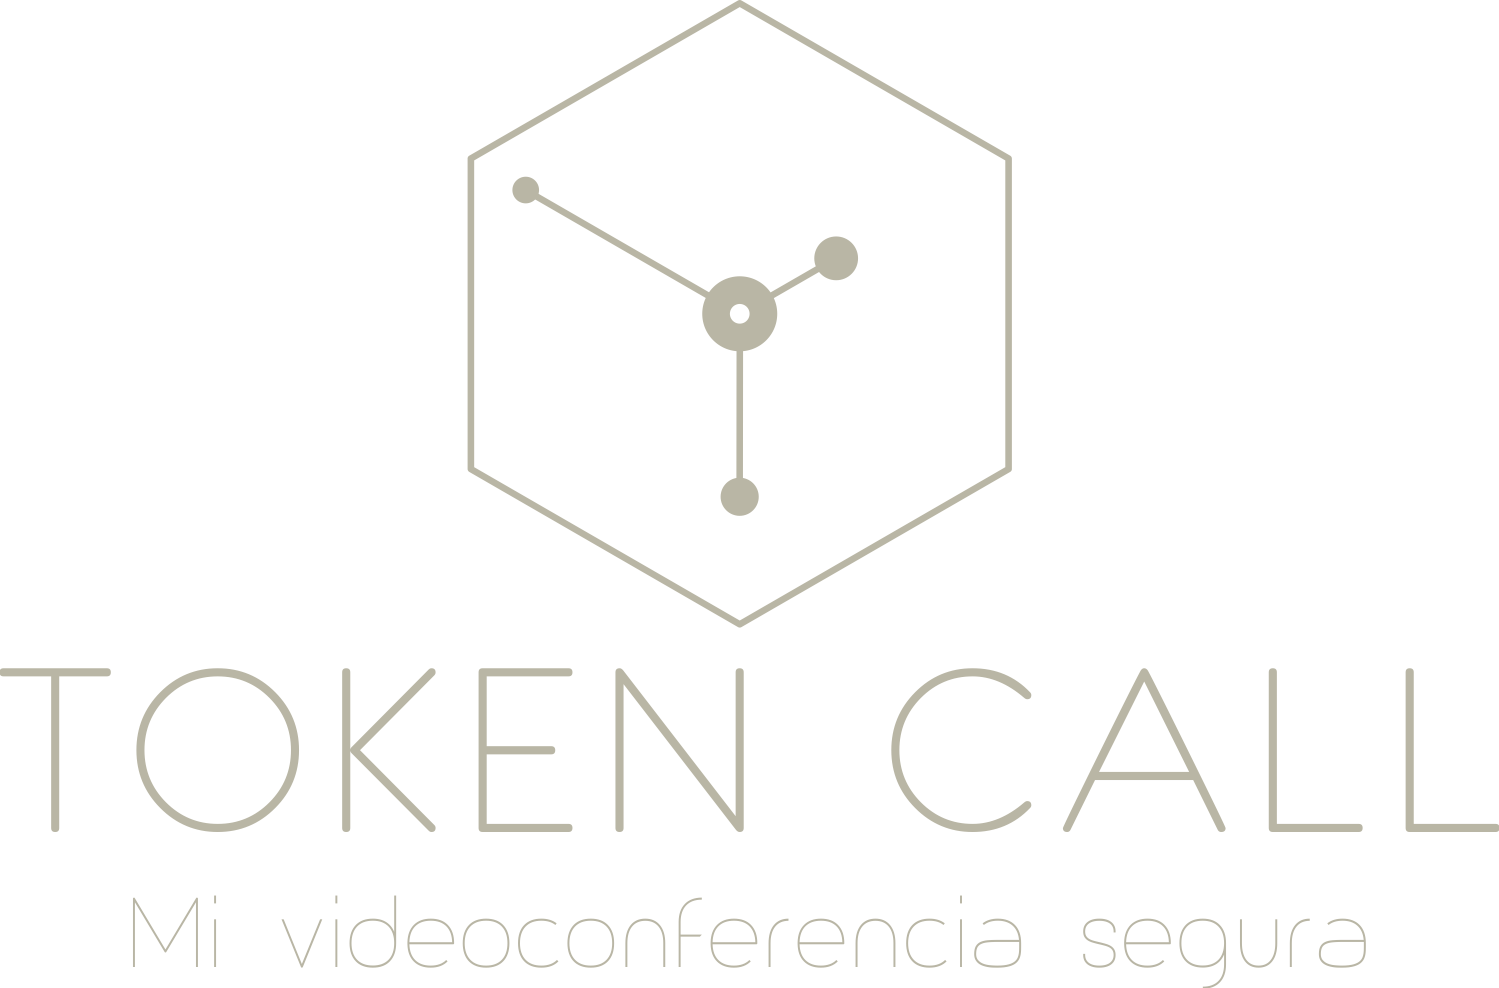 token call logo frase 2